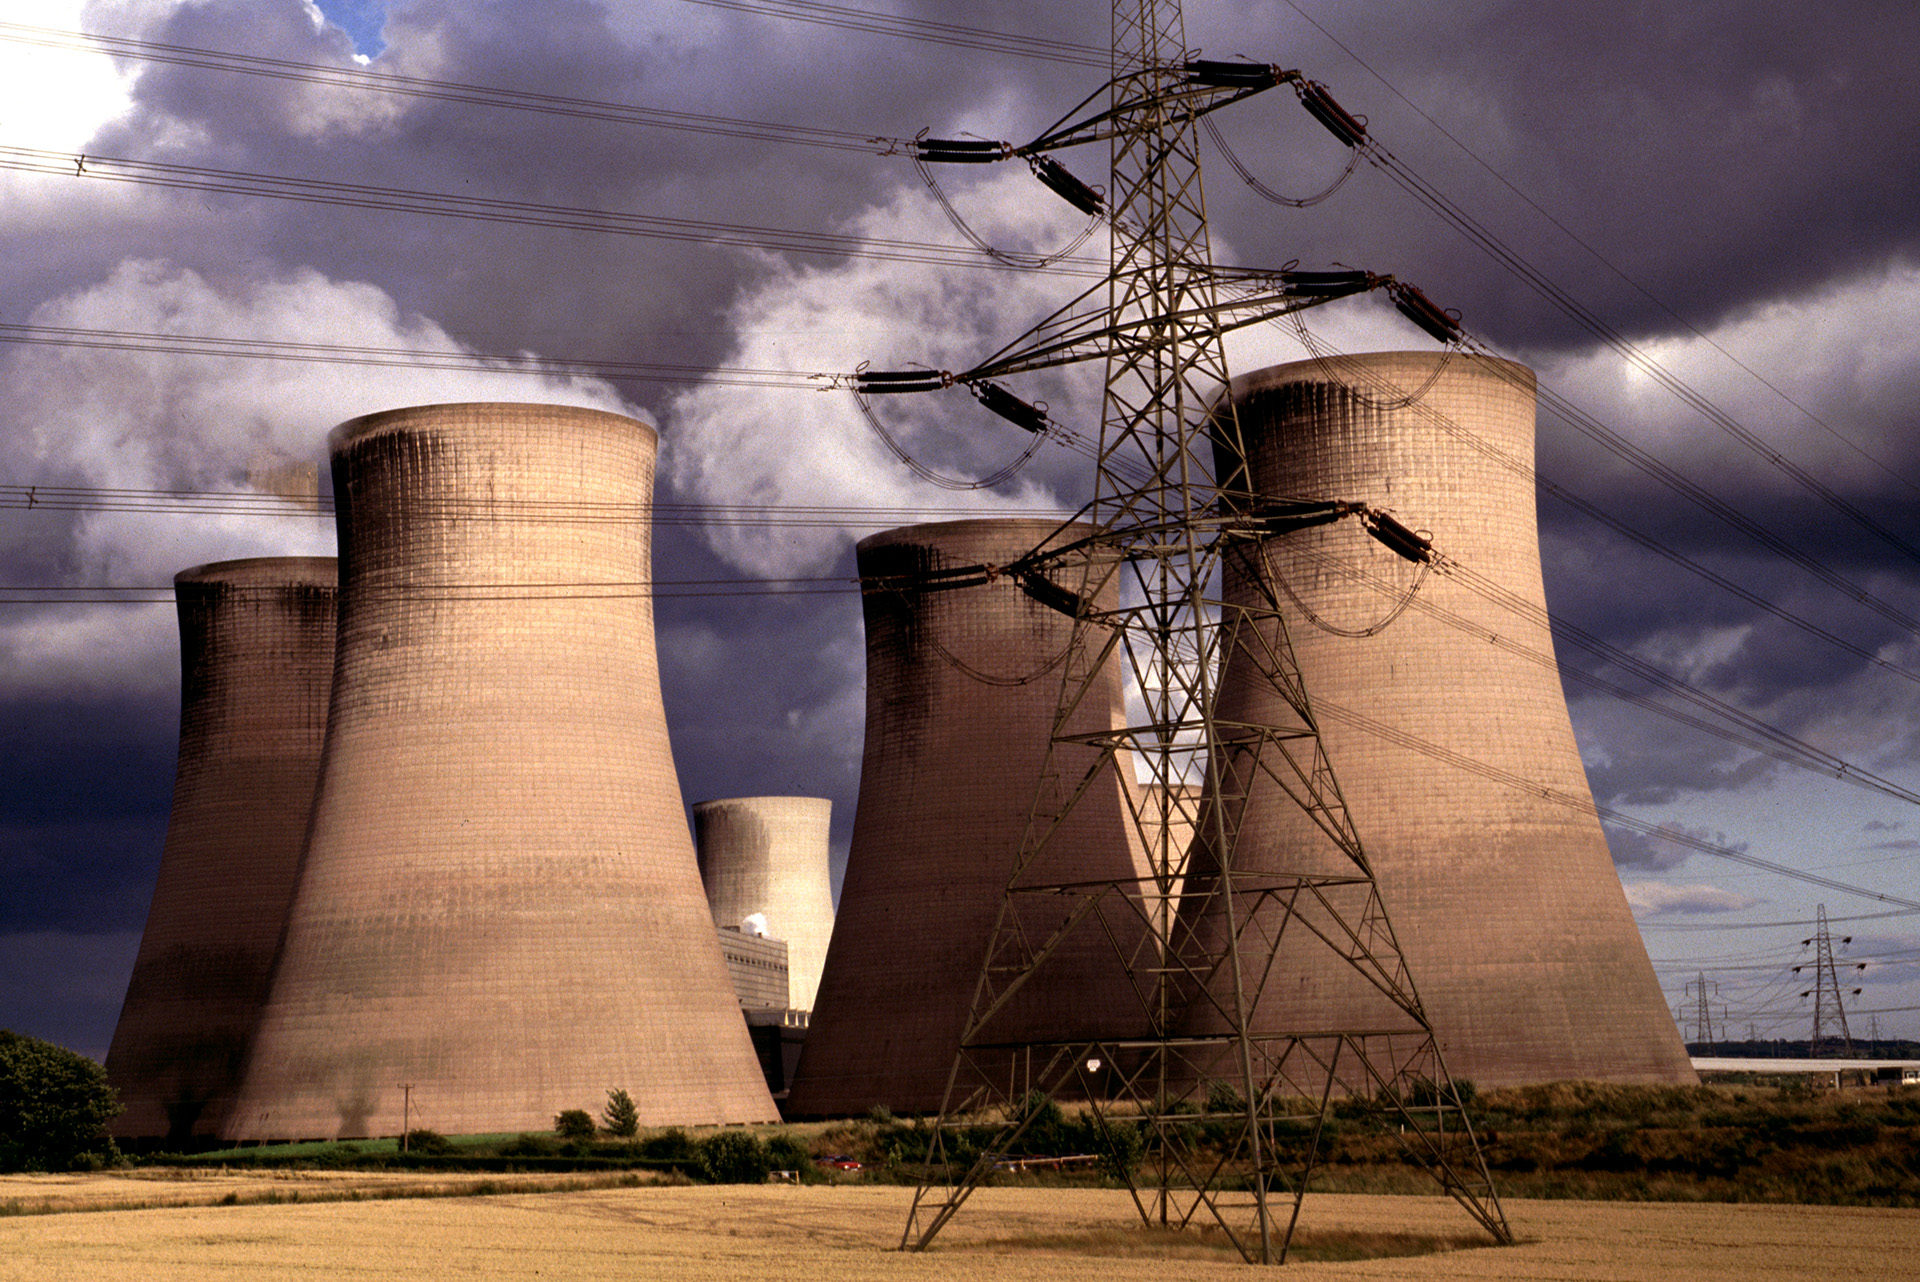 A power station in a wealthy European country (UK); it is these countries that have the resources, and duty, to take a lead on mitigating climate change, not the countries trying to bring clean energy to the world's poorest people.